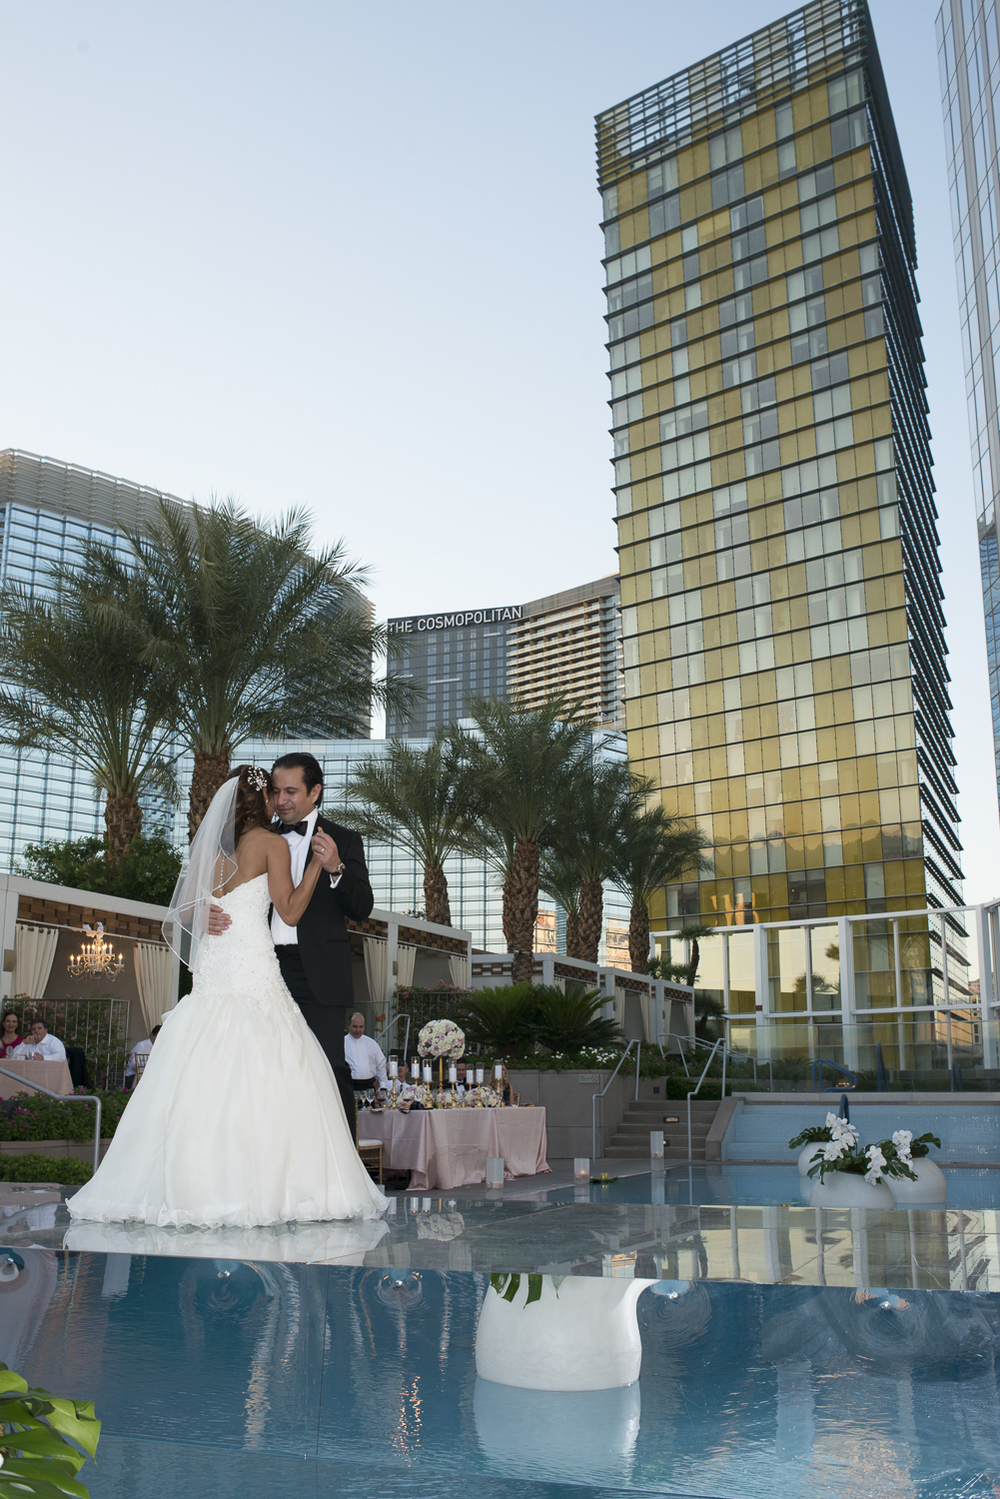 The mirrored dance floor floated above the water, giving the bride and groom a beautiful platform for their first dance.   Las Vegas Wedding at   Mandarin Oriental   |  Photo by  Altf Photography   |  Floral and Decor by  Naakiti Floral   |  Las Vegas Wedding Planner  Andrea Eppolito